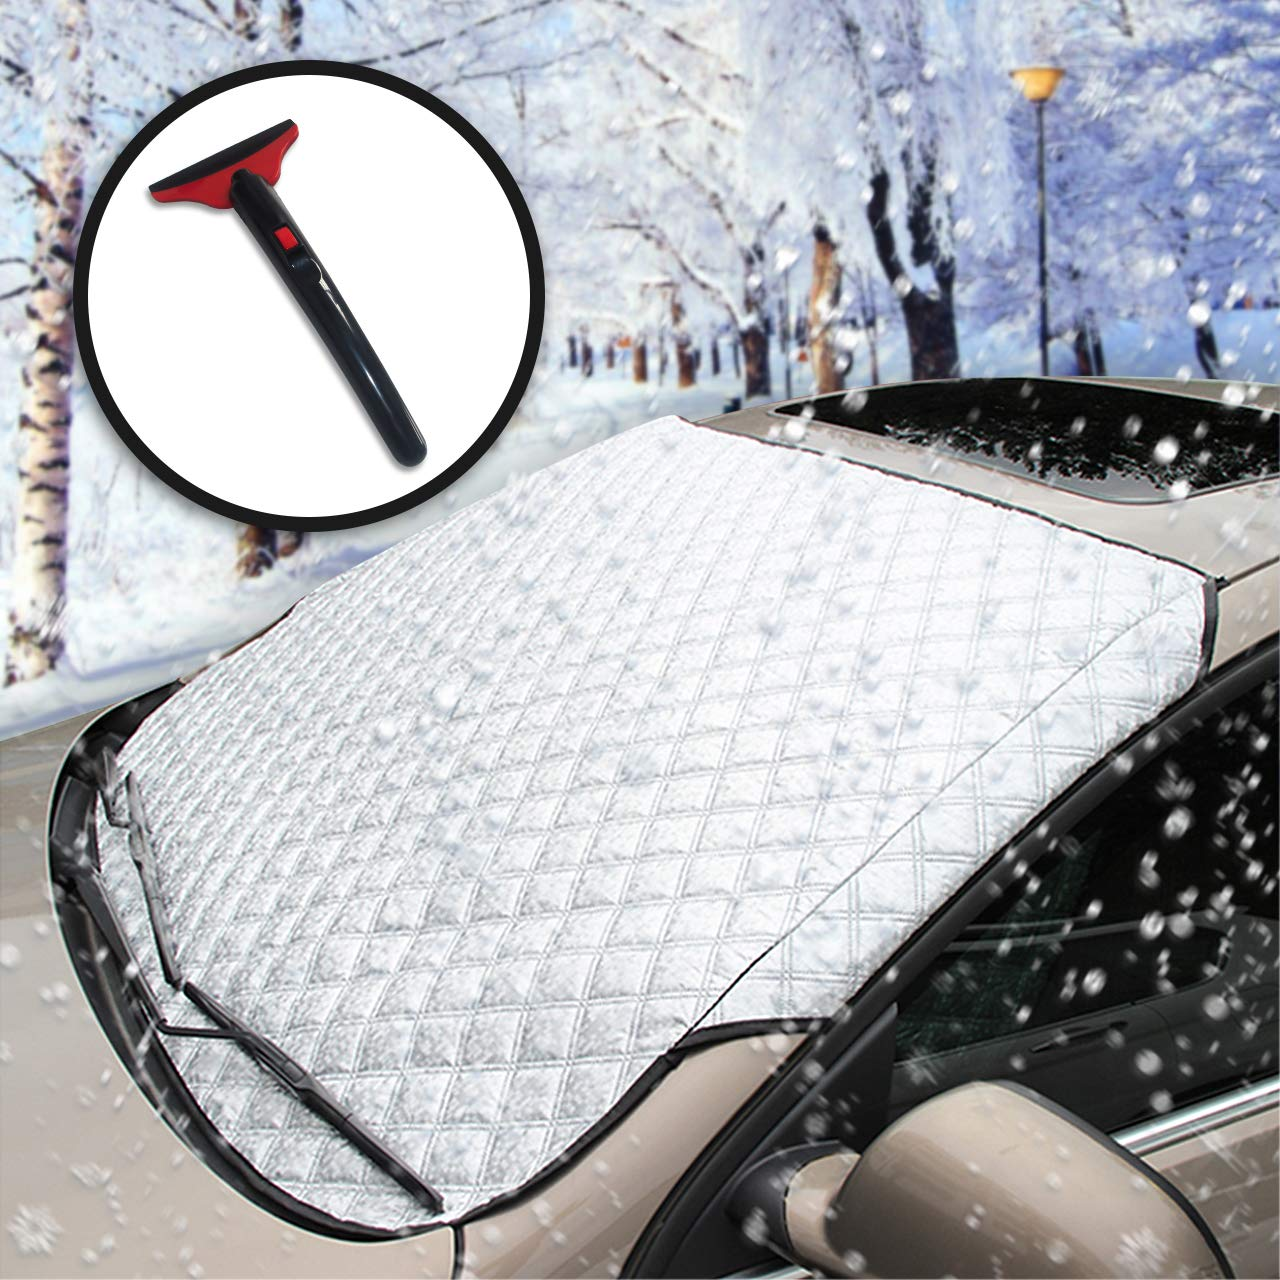 Lamoe Car Windshield Cover, Magnetic Snow Cover Come with Ice Scraper, Heavy Duty Car Cover for Ice Frost Sun UV Water Resistant, Perfect for Normal Car SUVs All Years Summer/Winter (147x112cm)